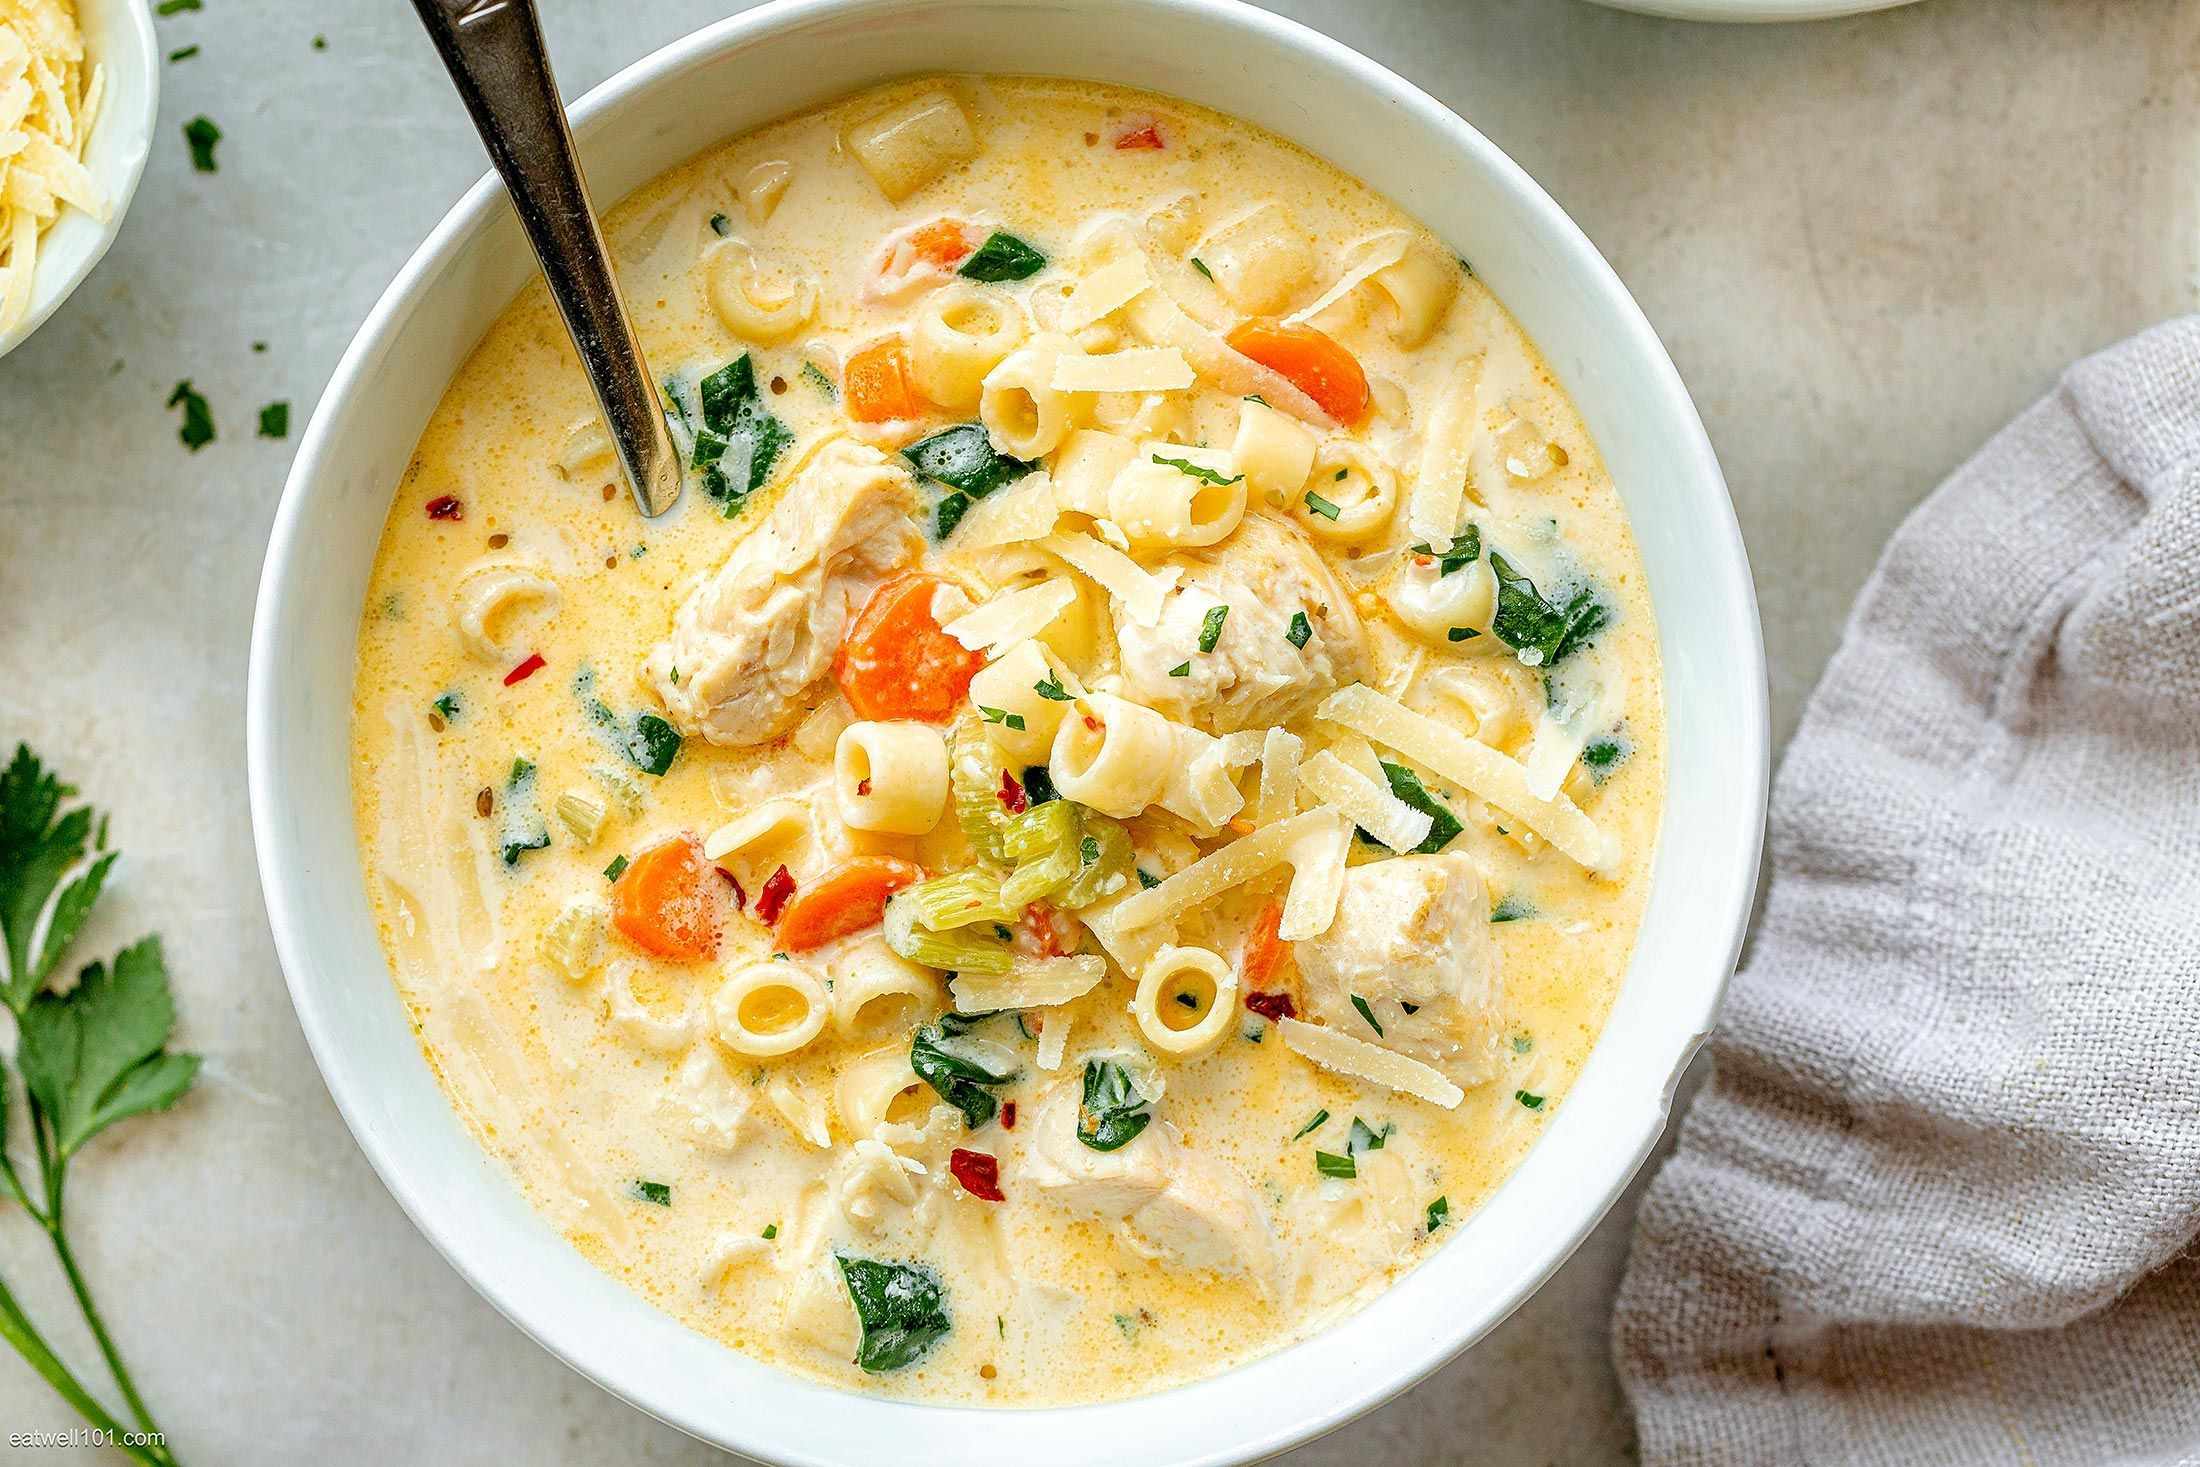 Creamy Chicken Soup With Pasta And Spinach In 2020 Creamy Chicken Soup Pasta Soup Recipes Chicken Pasta Soup Recipe